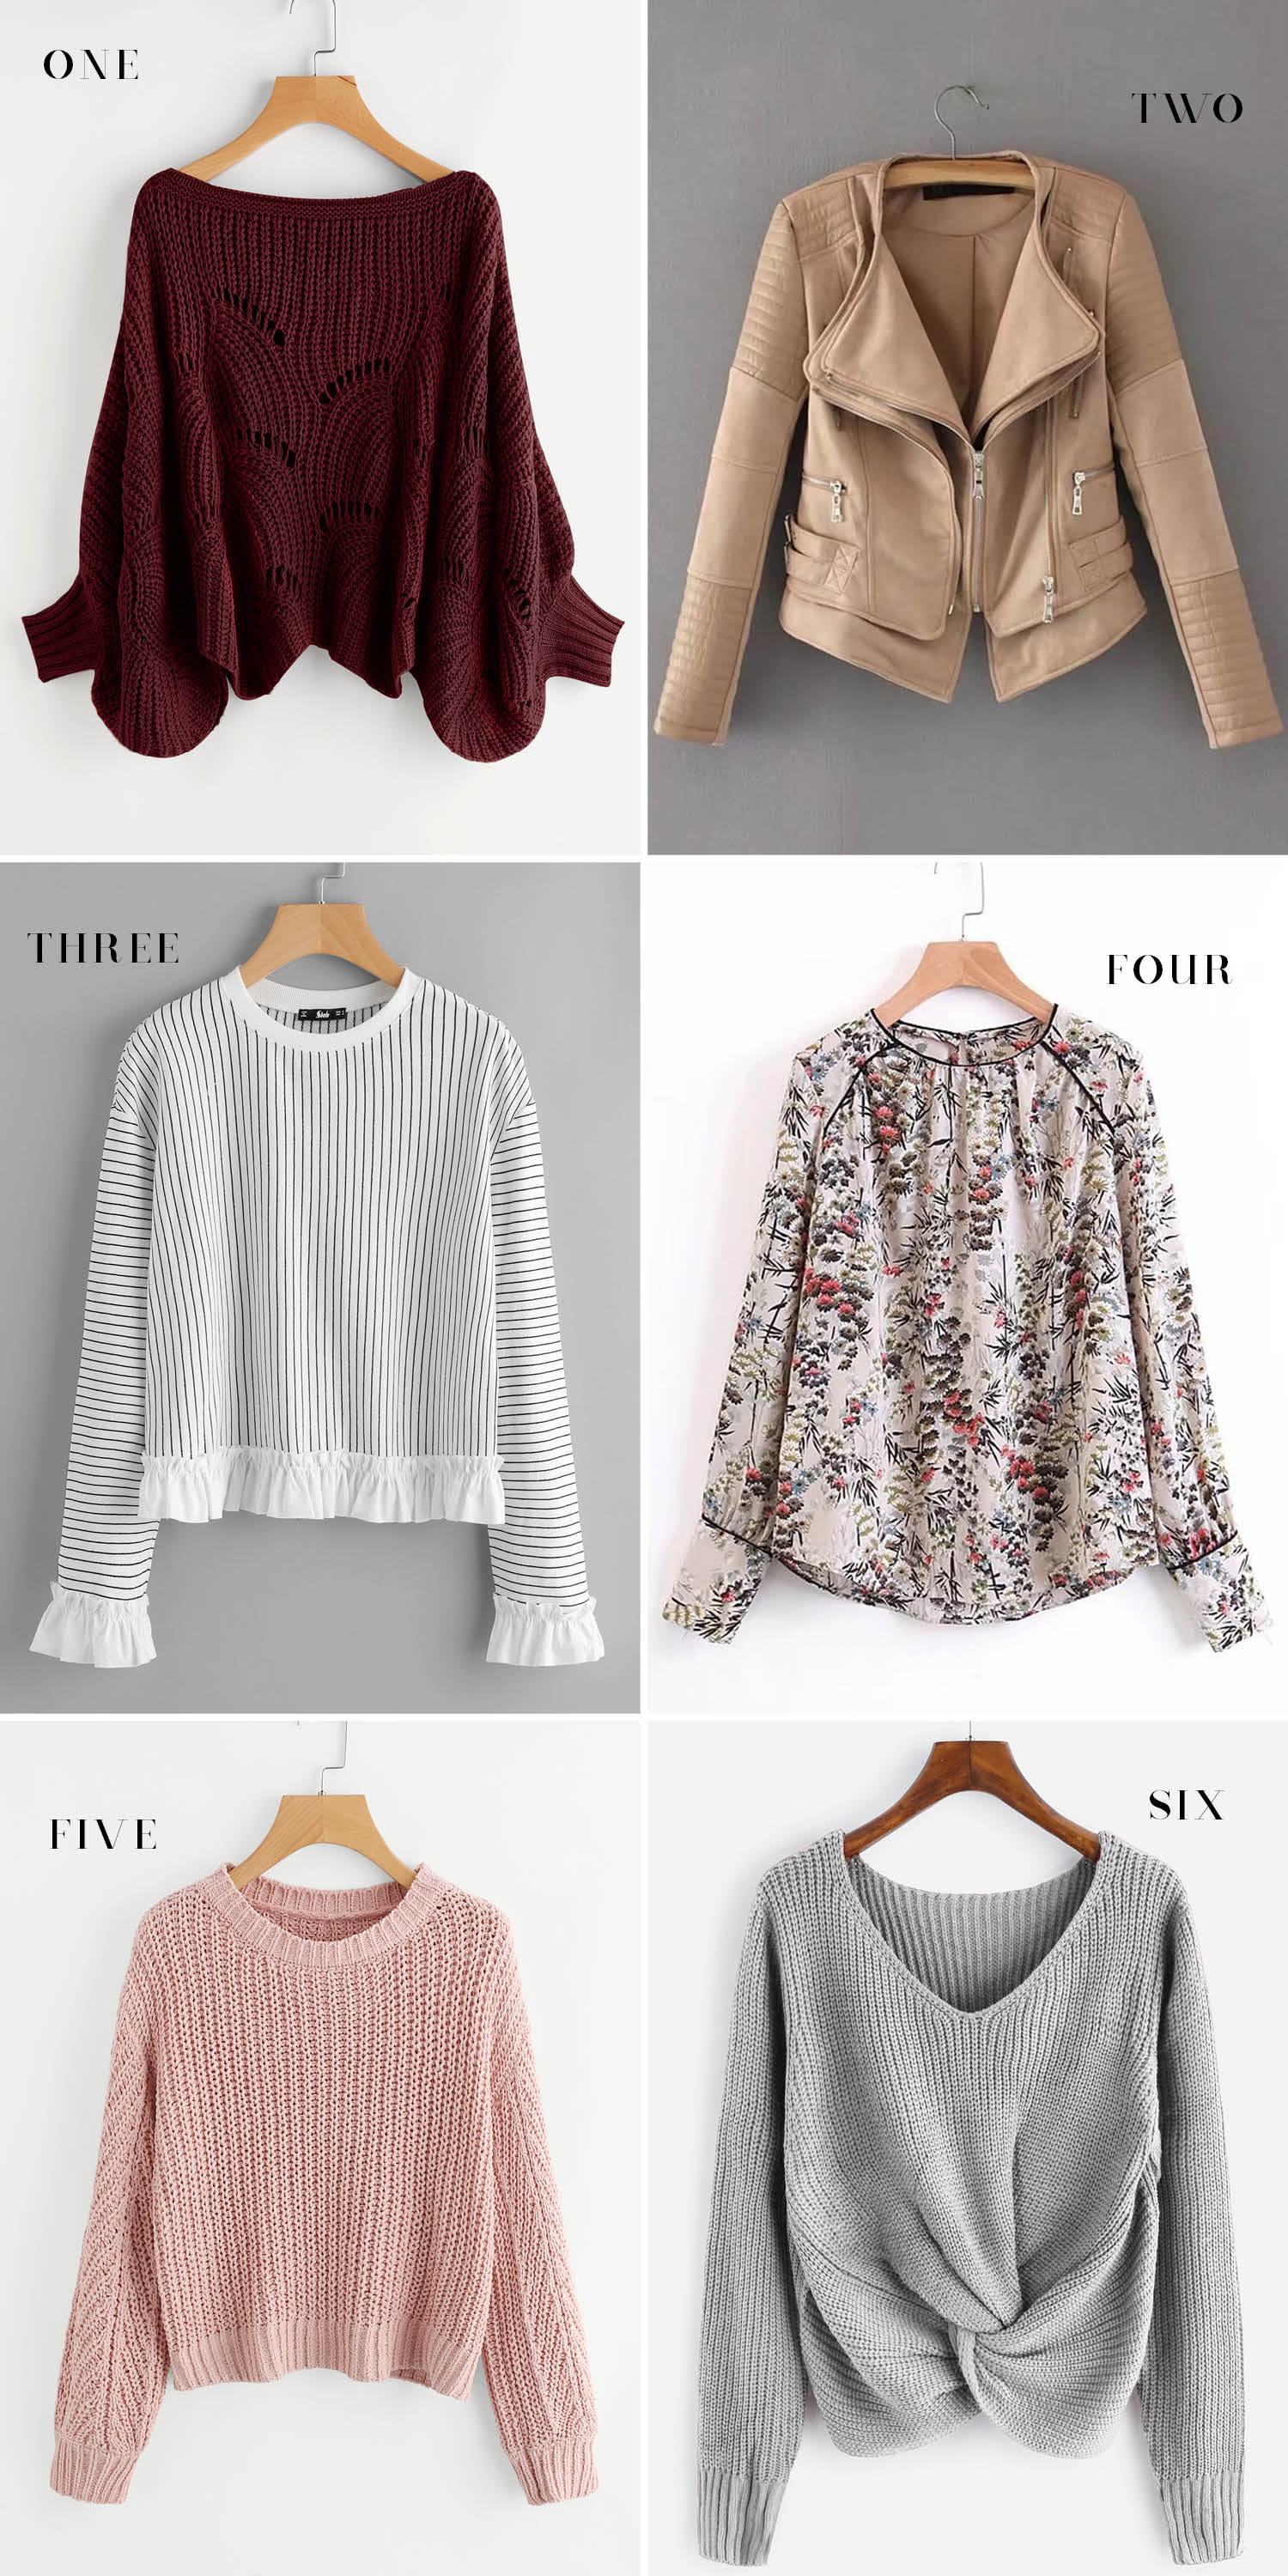 10bc1e6d84b1 layer-up-for-fall-fashion-tops-shein-favorites-rgdaily-blog – RG Daily